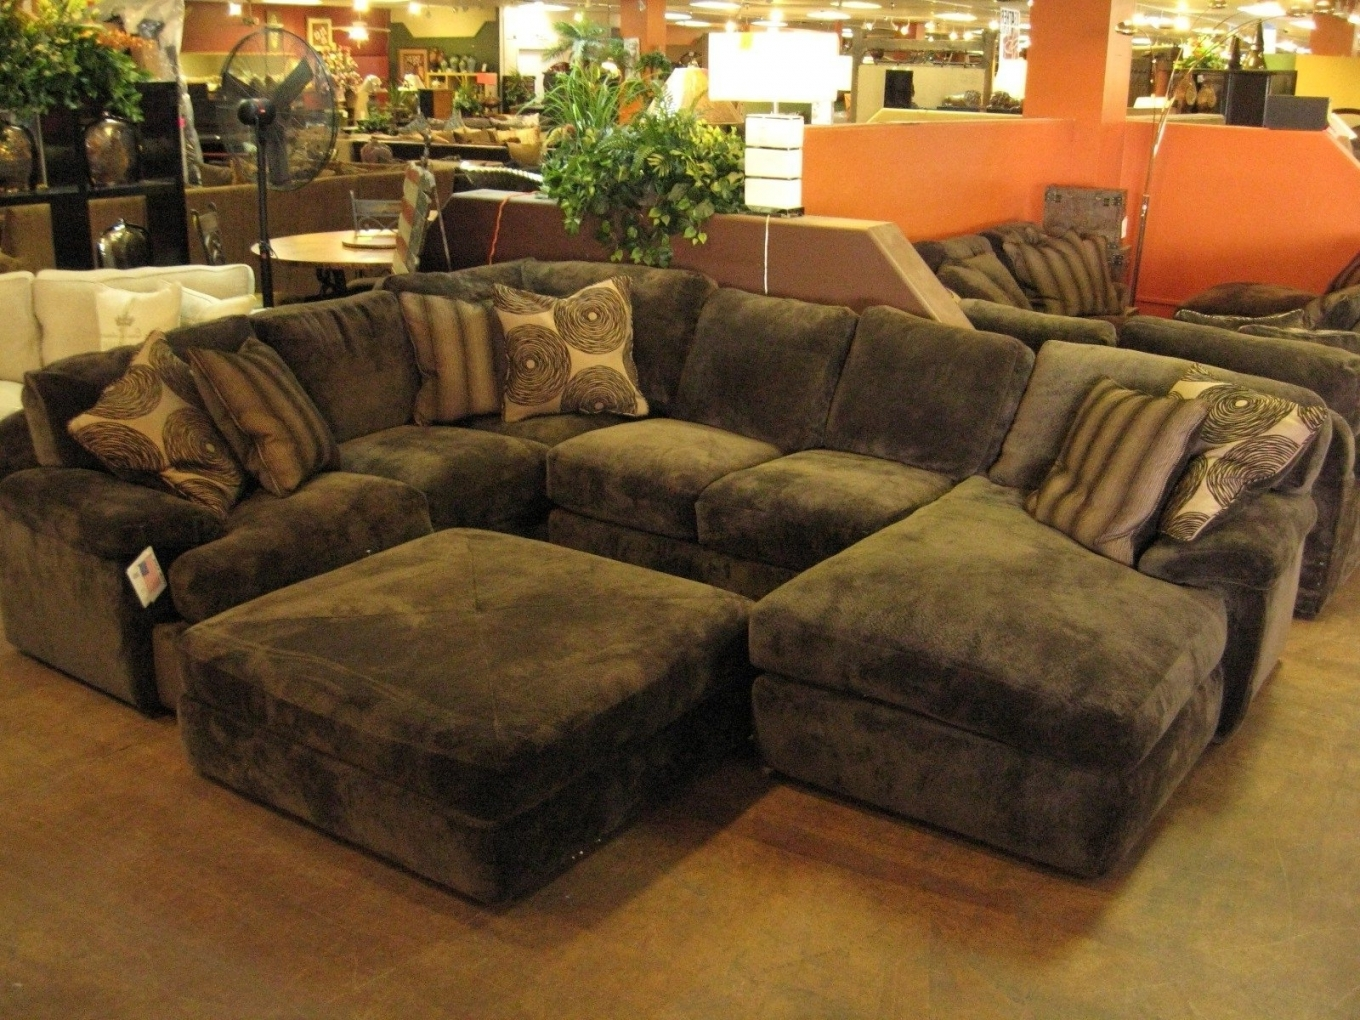 Comfy Sectional Sofas Within Well Liked Best Comfy Sectional Sofas 18 For Your Sofas And Couches Ideas (View 6 of 15)